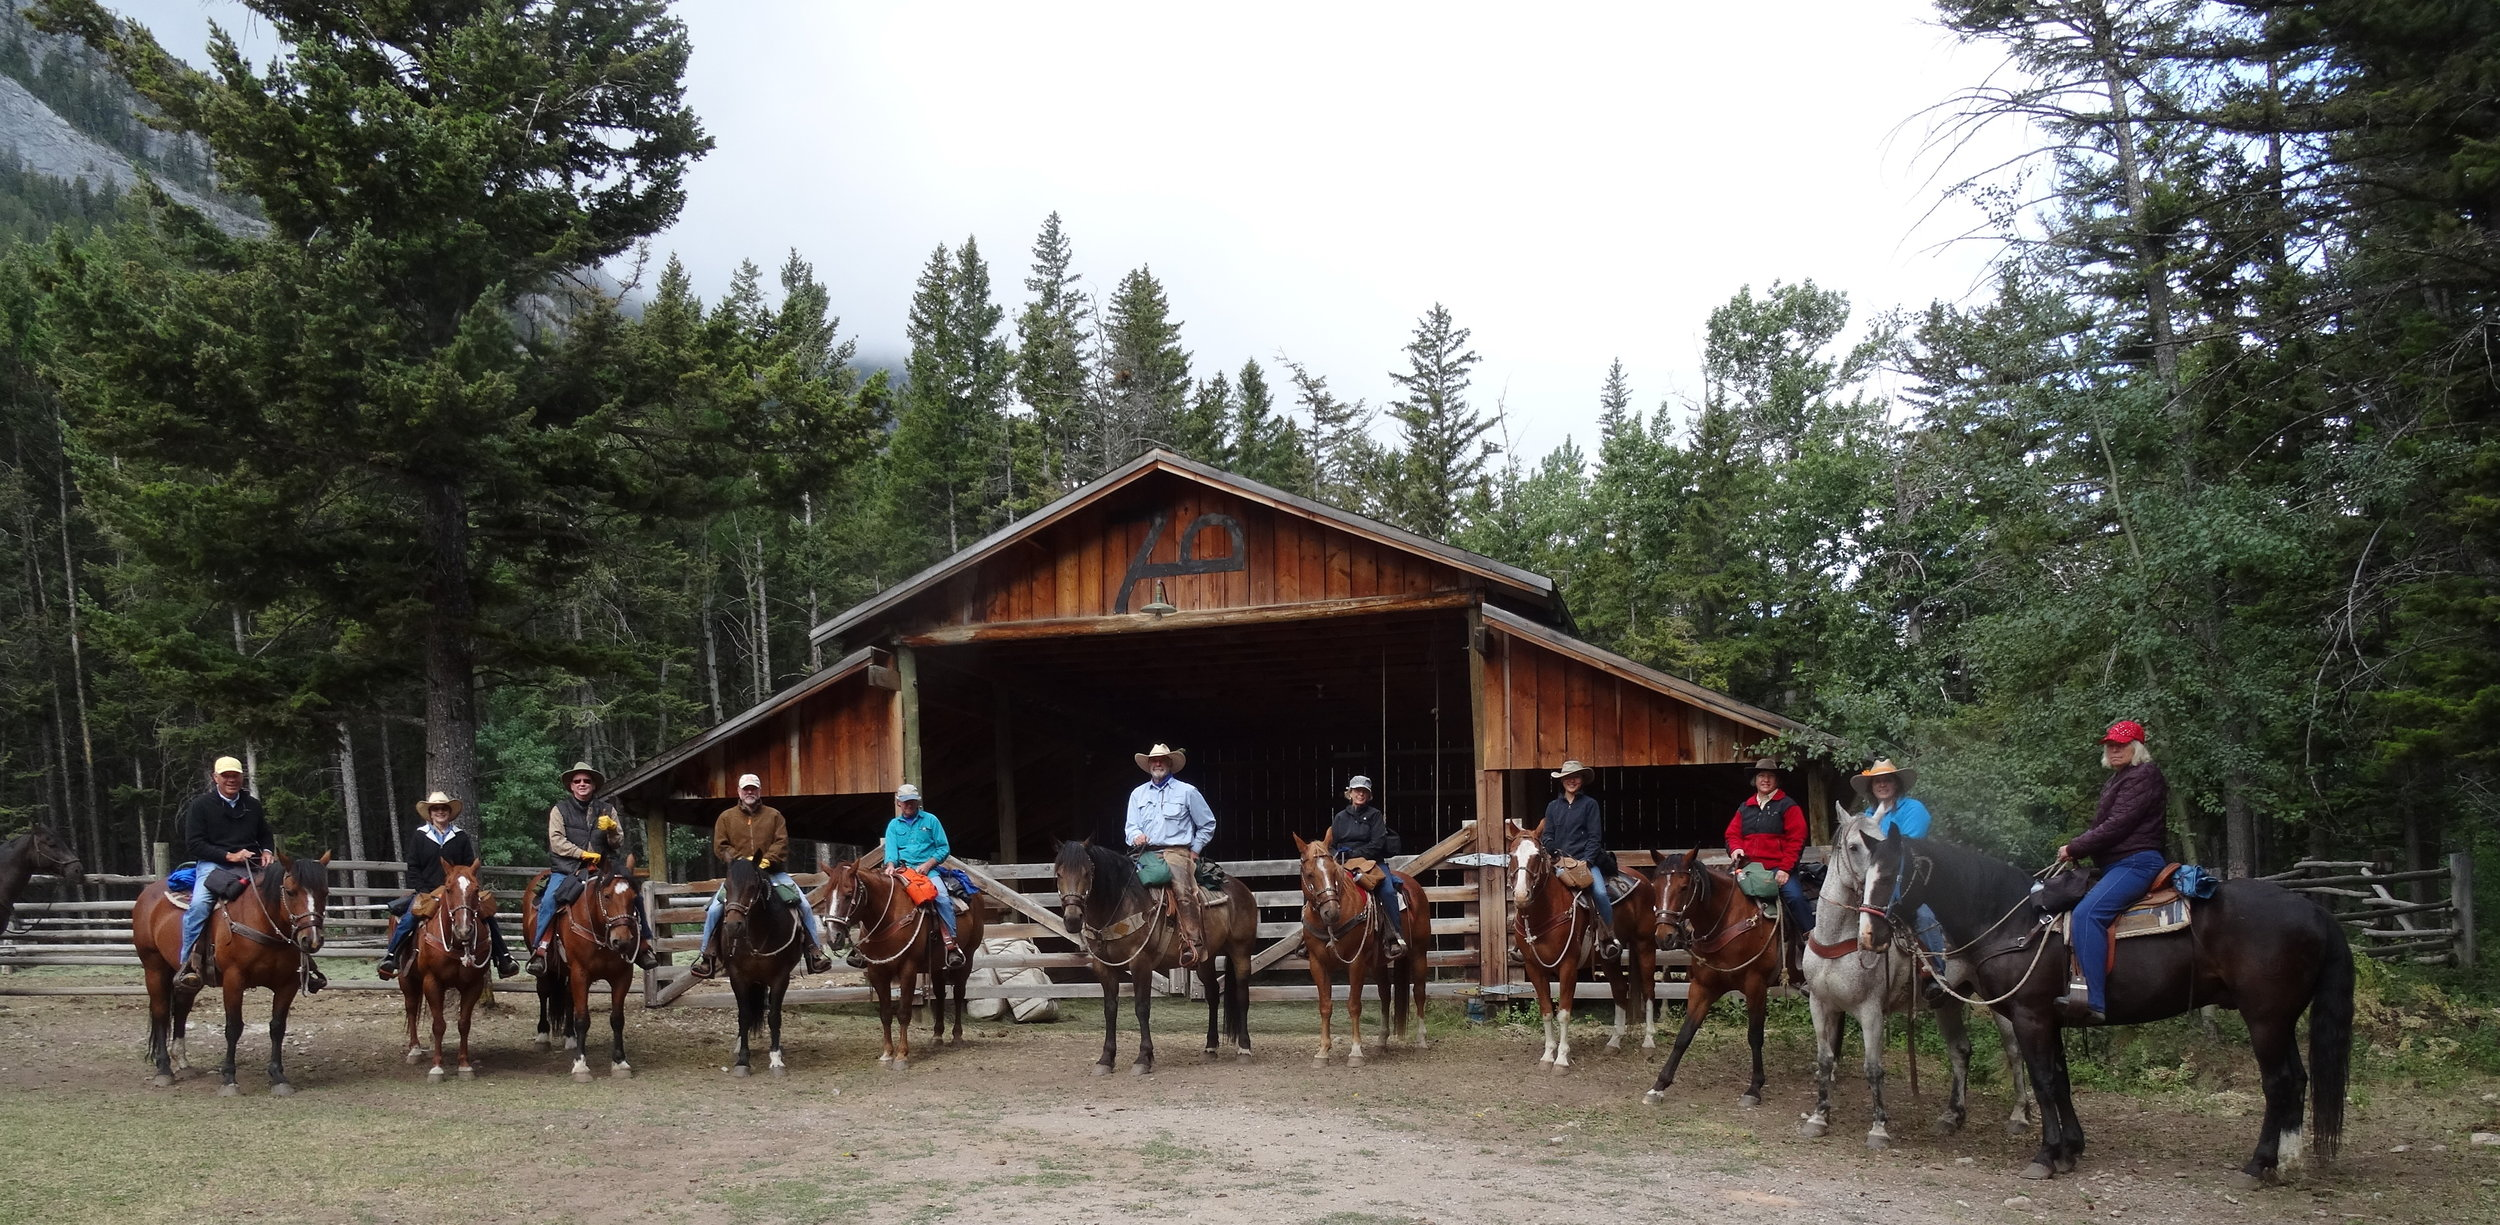 Ready to set off into the Bob Marshall Wilderness